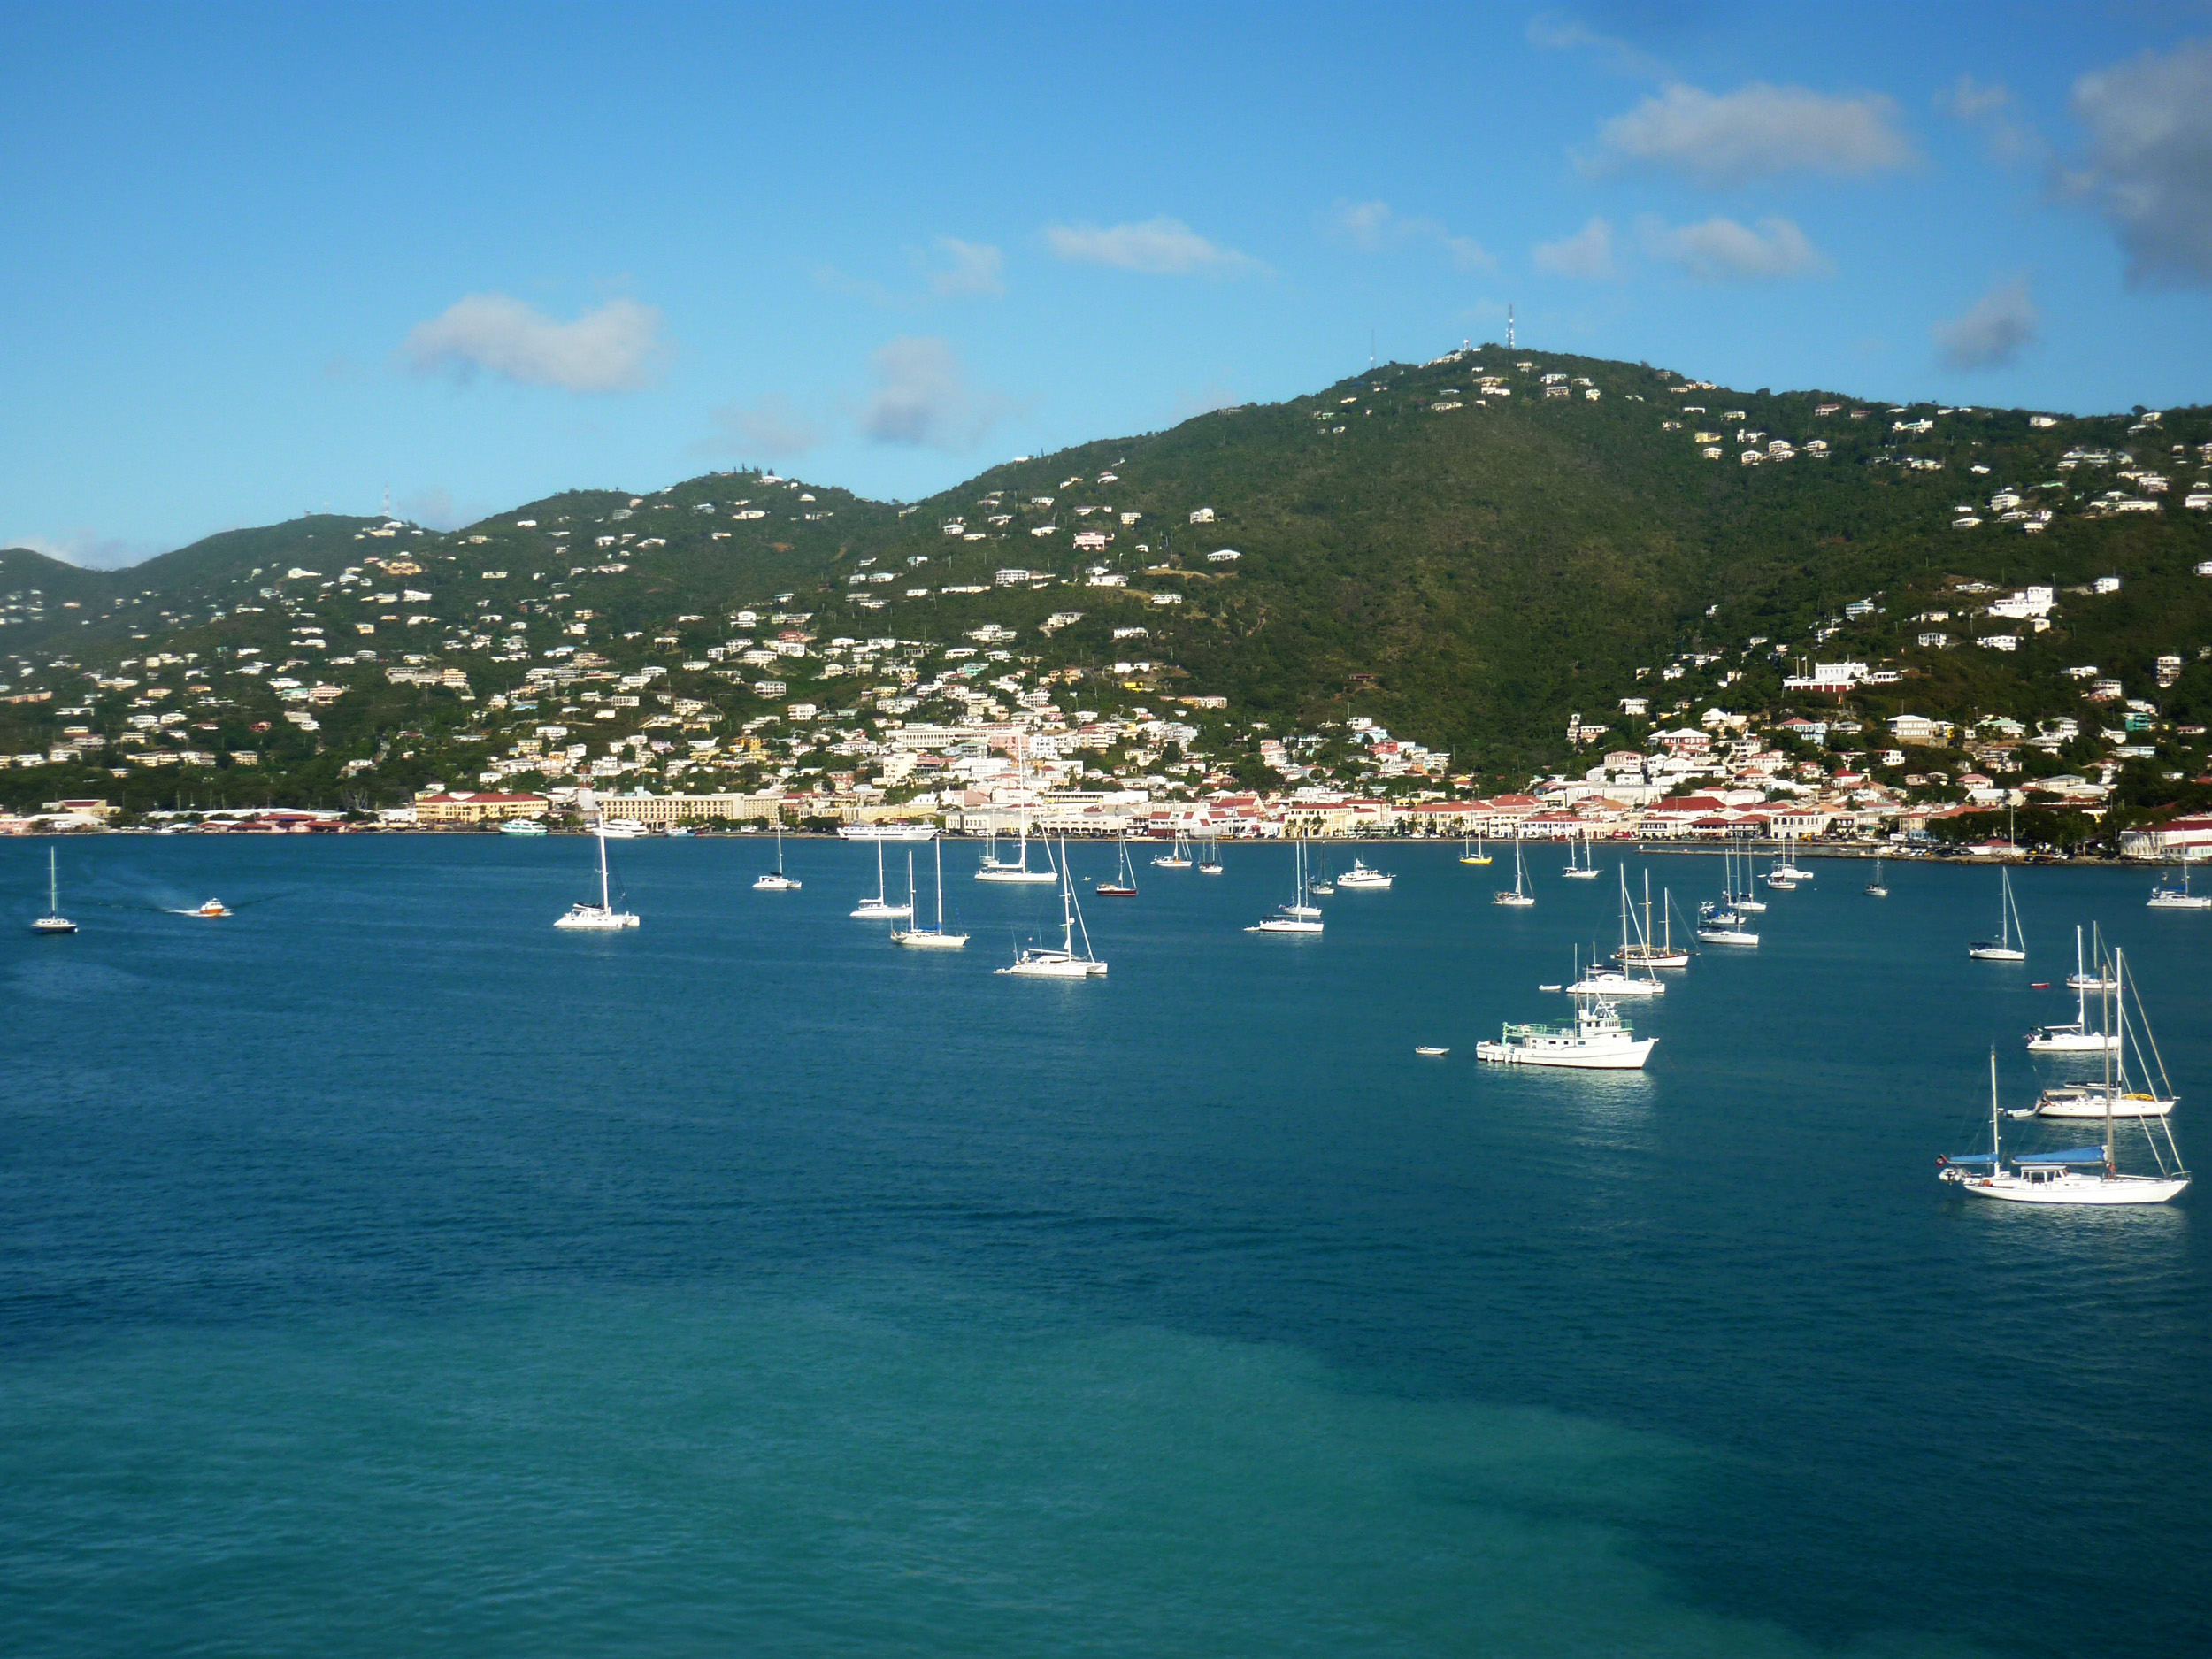 a view of charlotte amalie, capital of Saitin Thomas, from the water